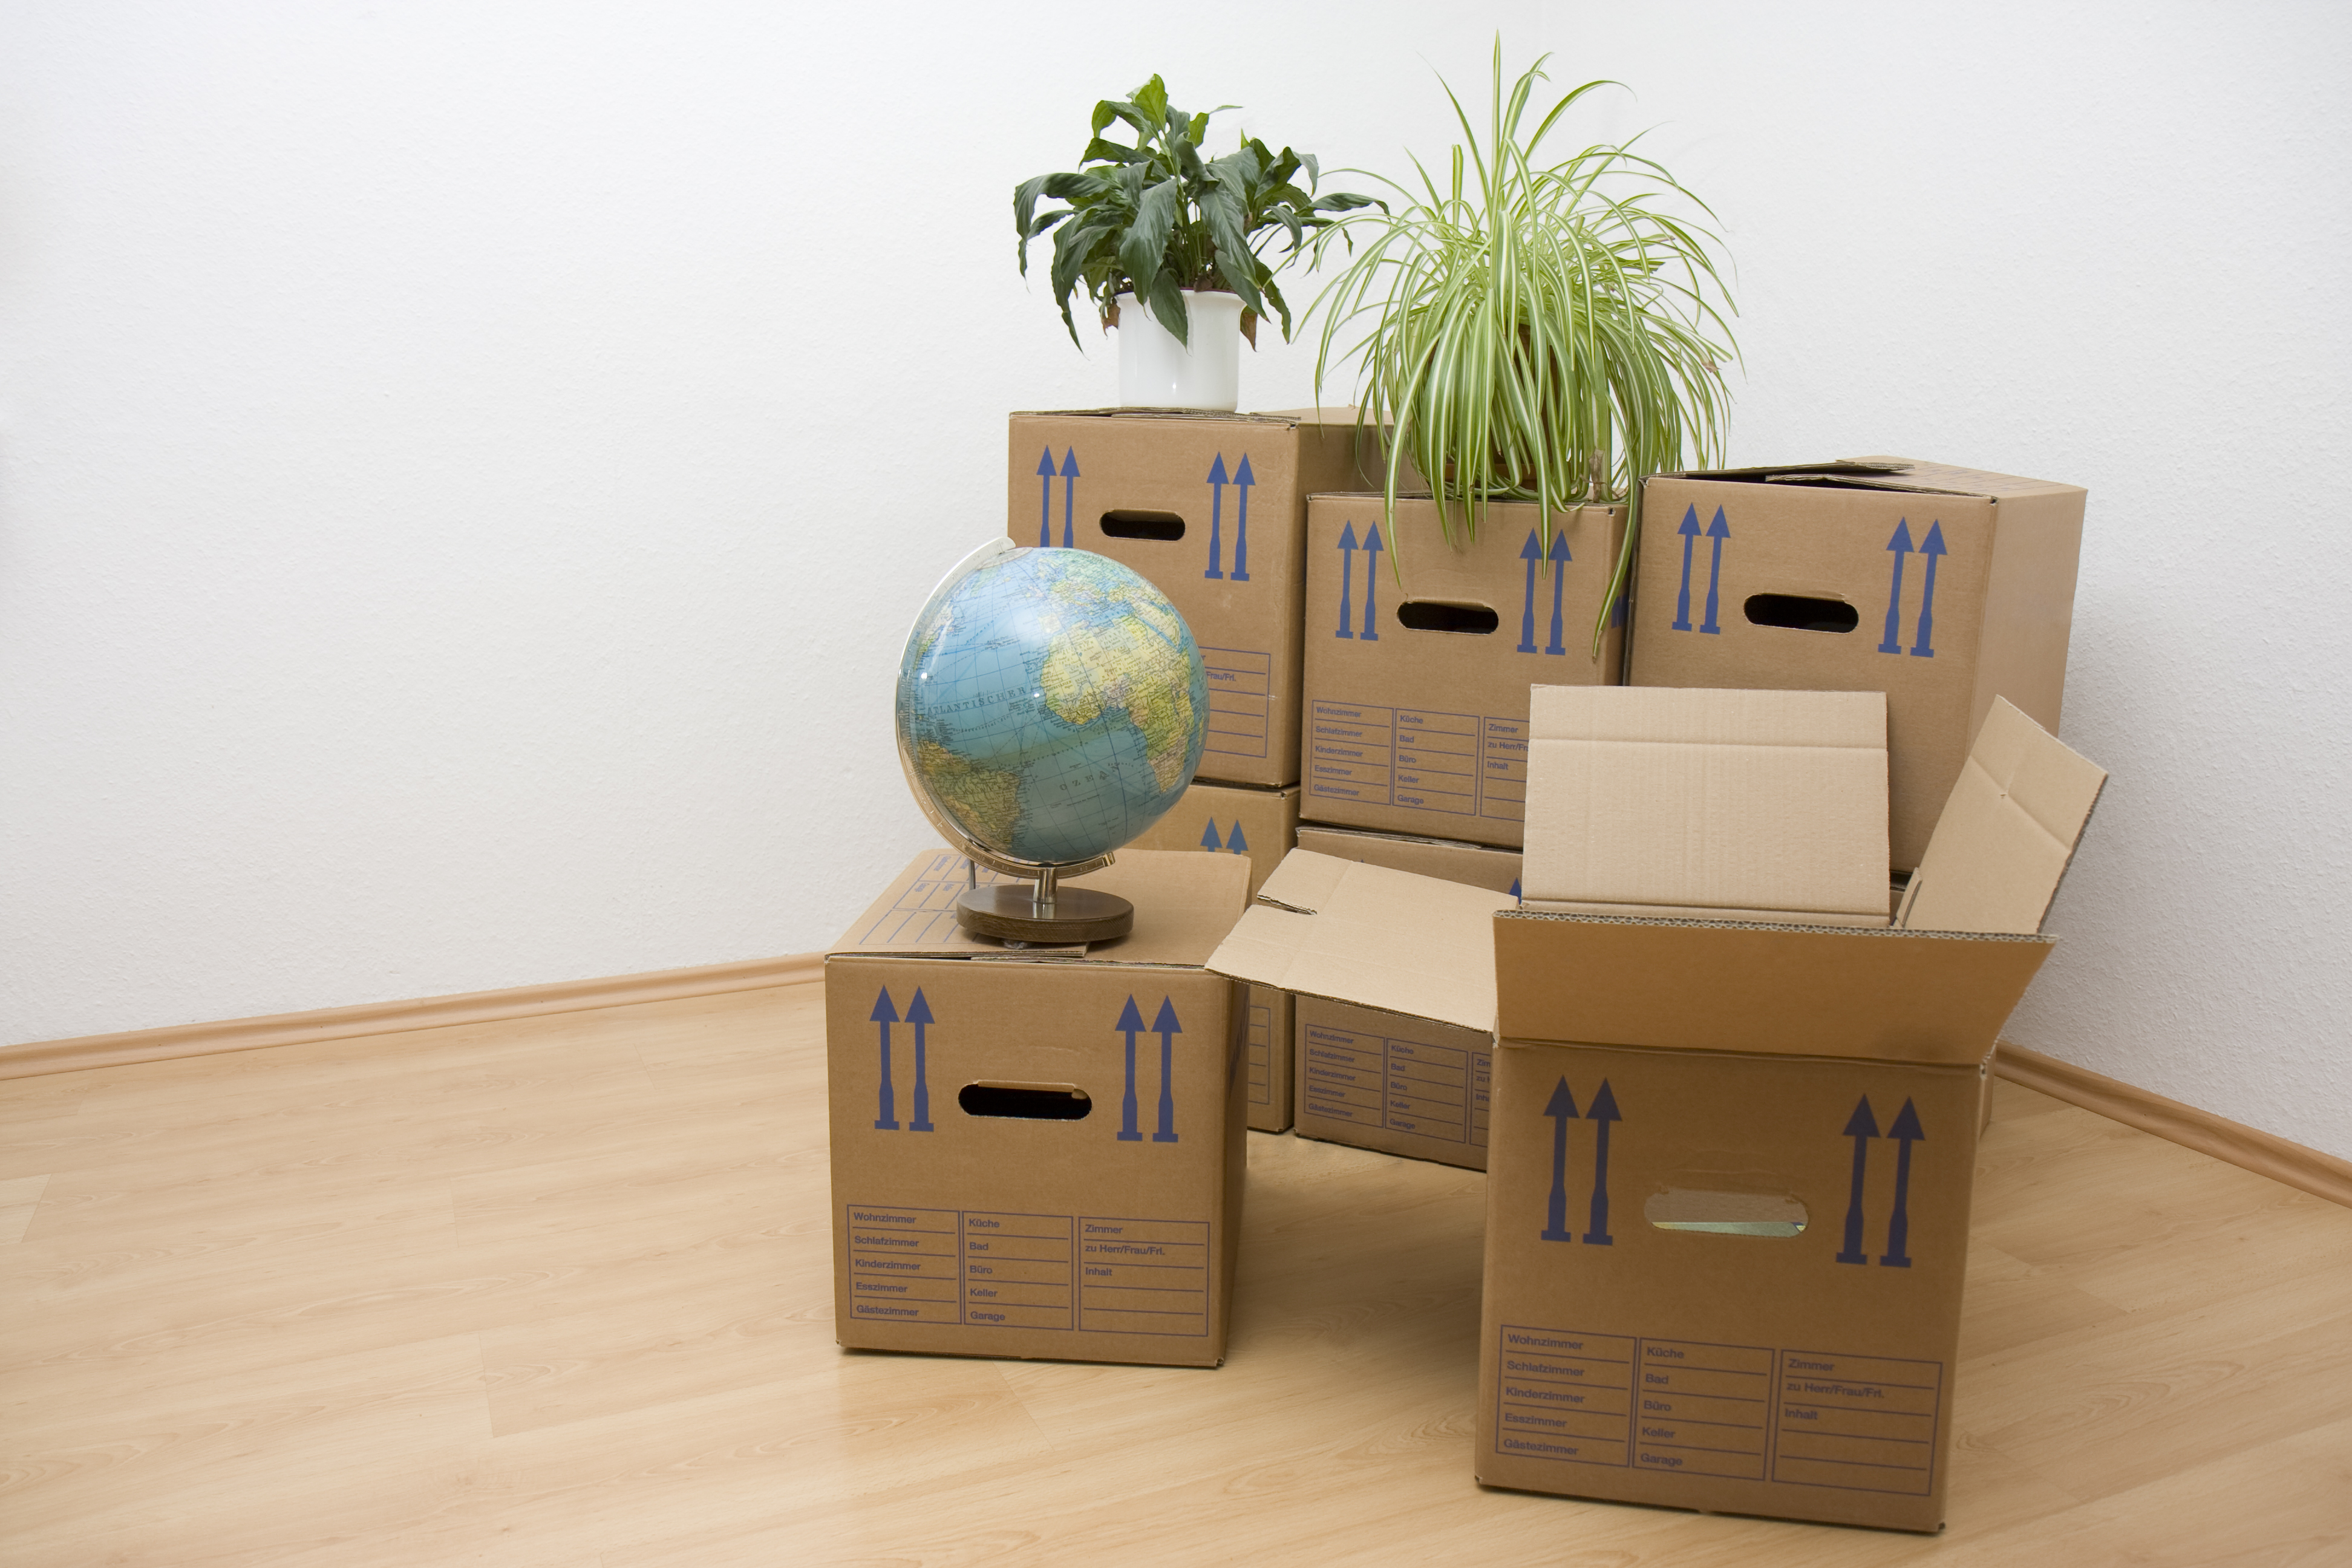 Movers Are of Great Help While Moving To a New Place